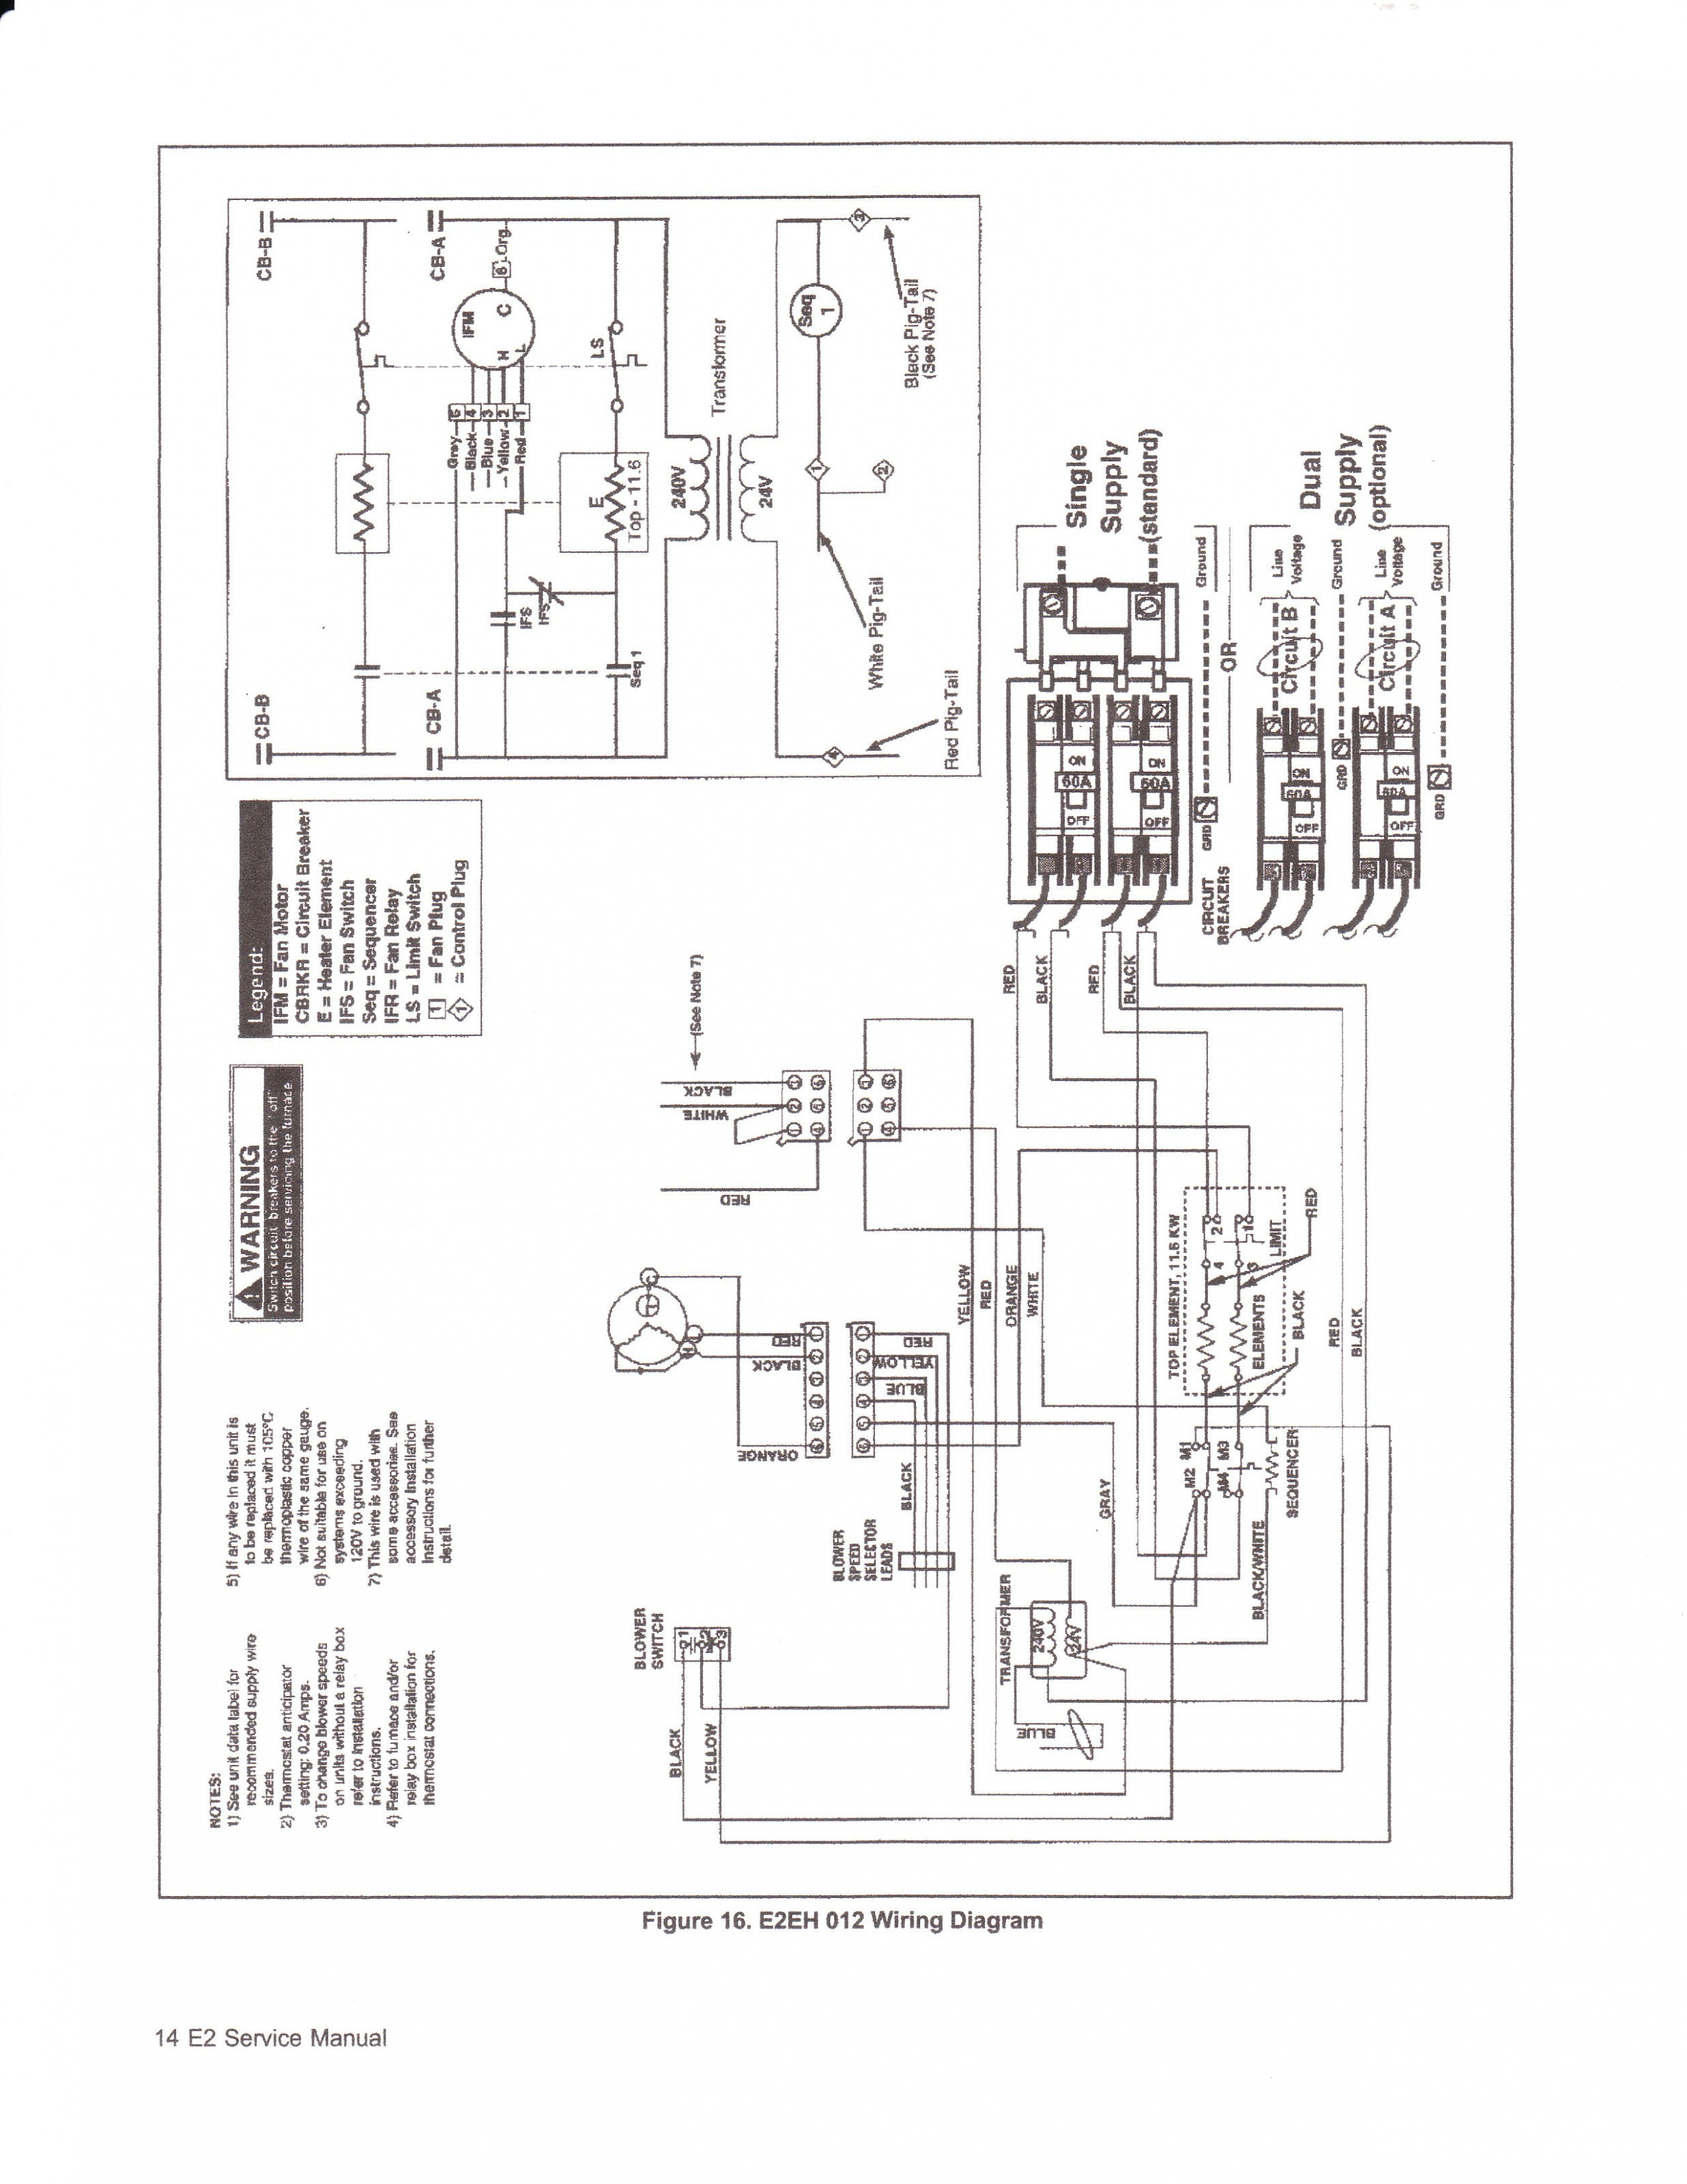 Coleman Electric Furnace Wiring Diagram Download